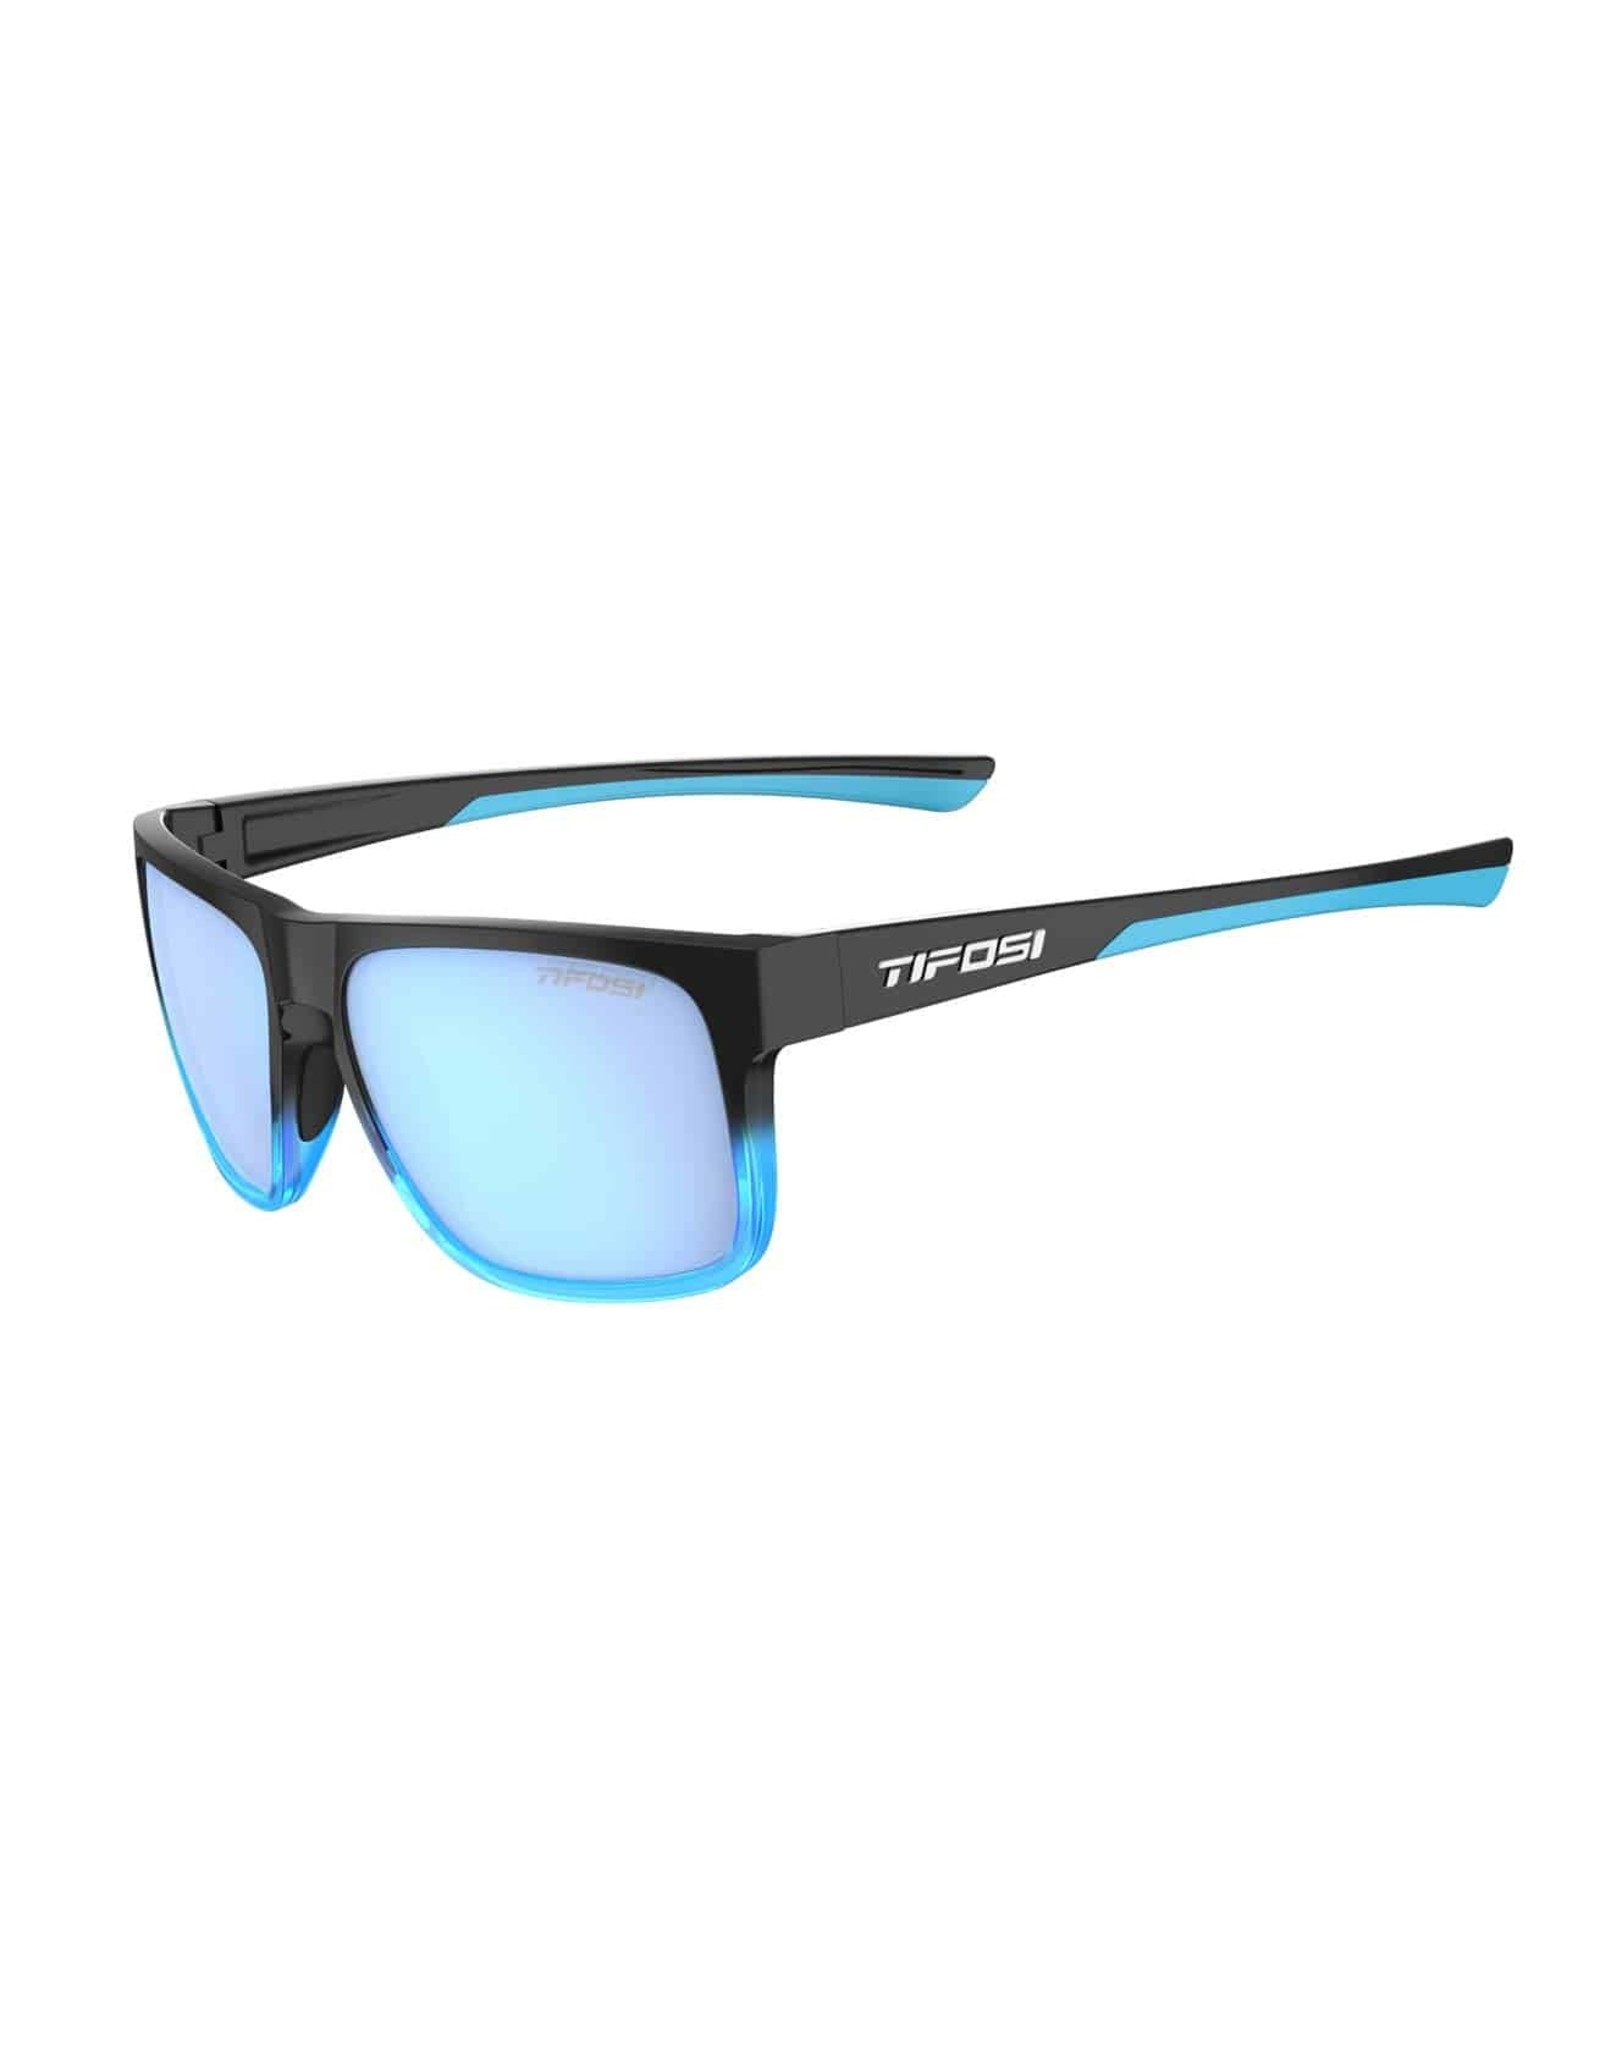 Tifosi Optics Swick, Onyx Blue Fade Sky Blue Glasses